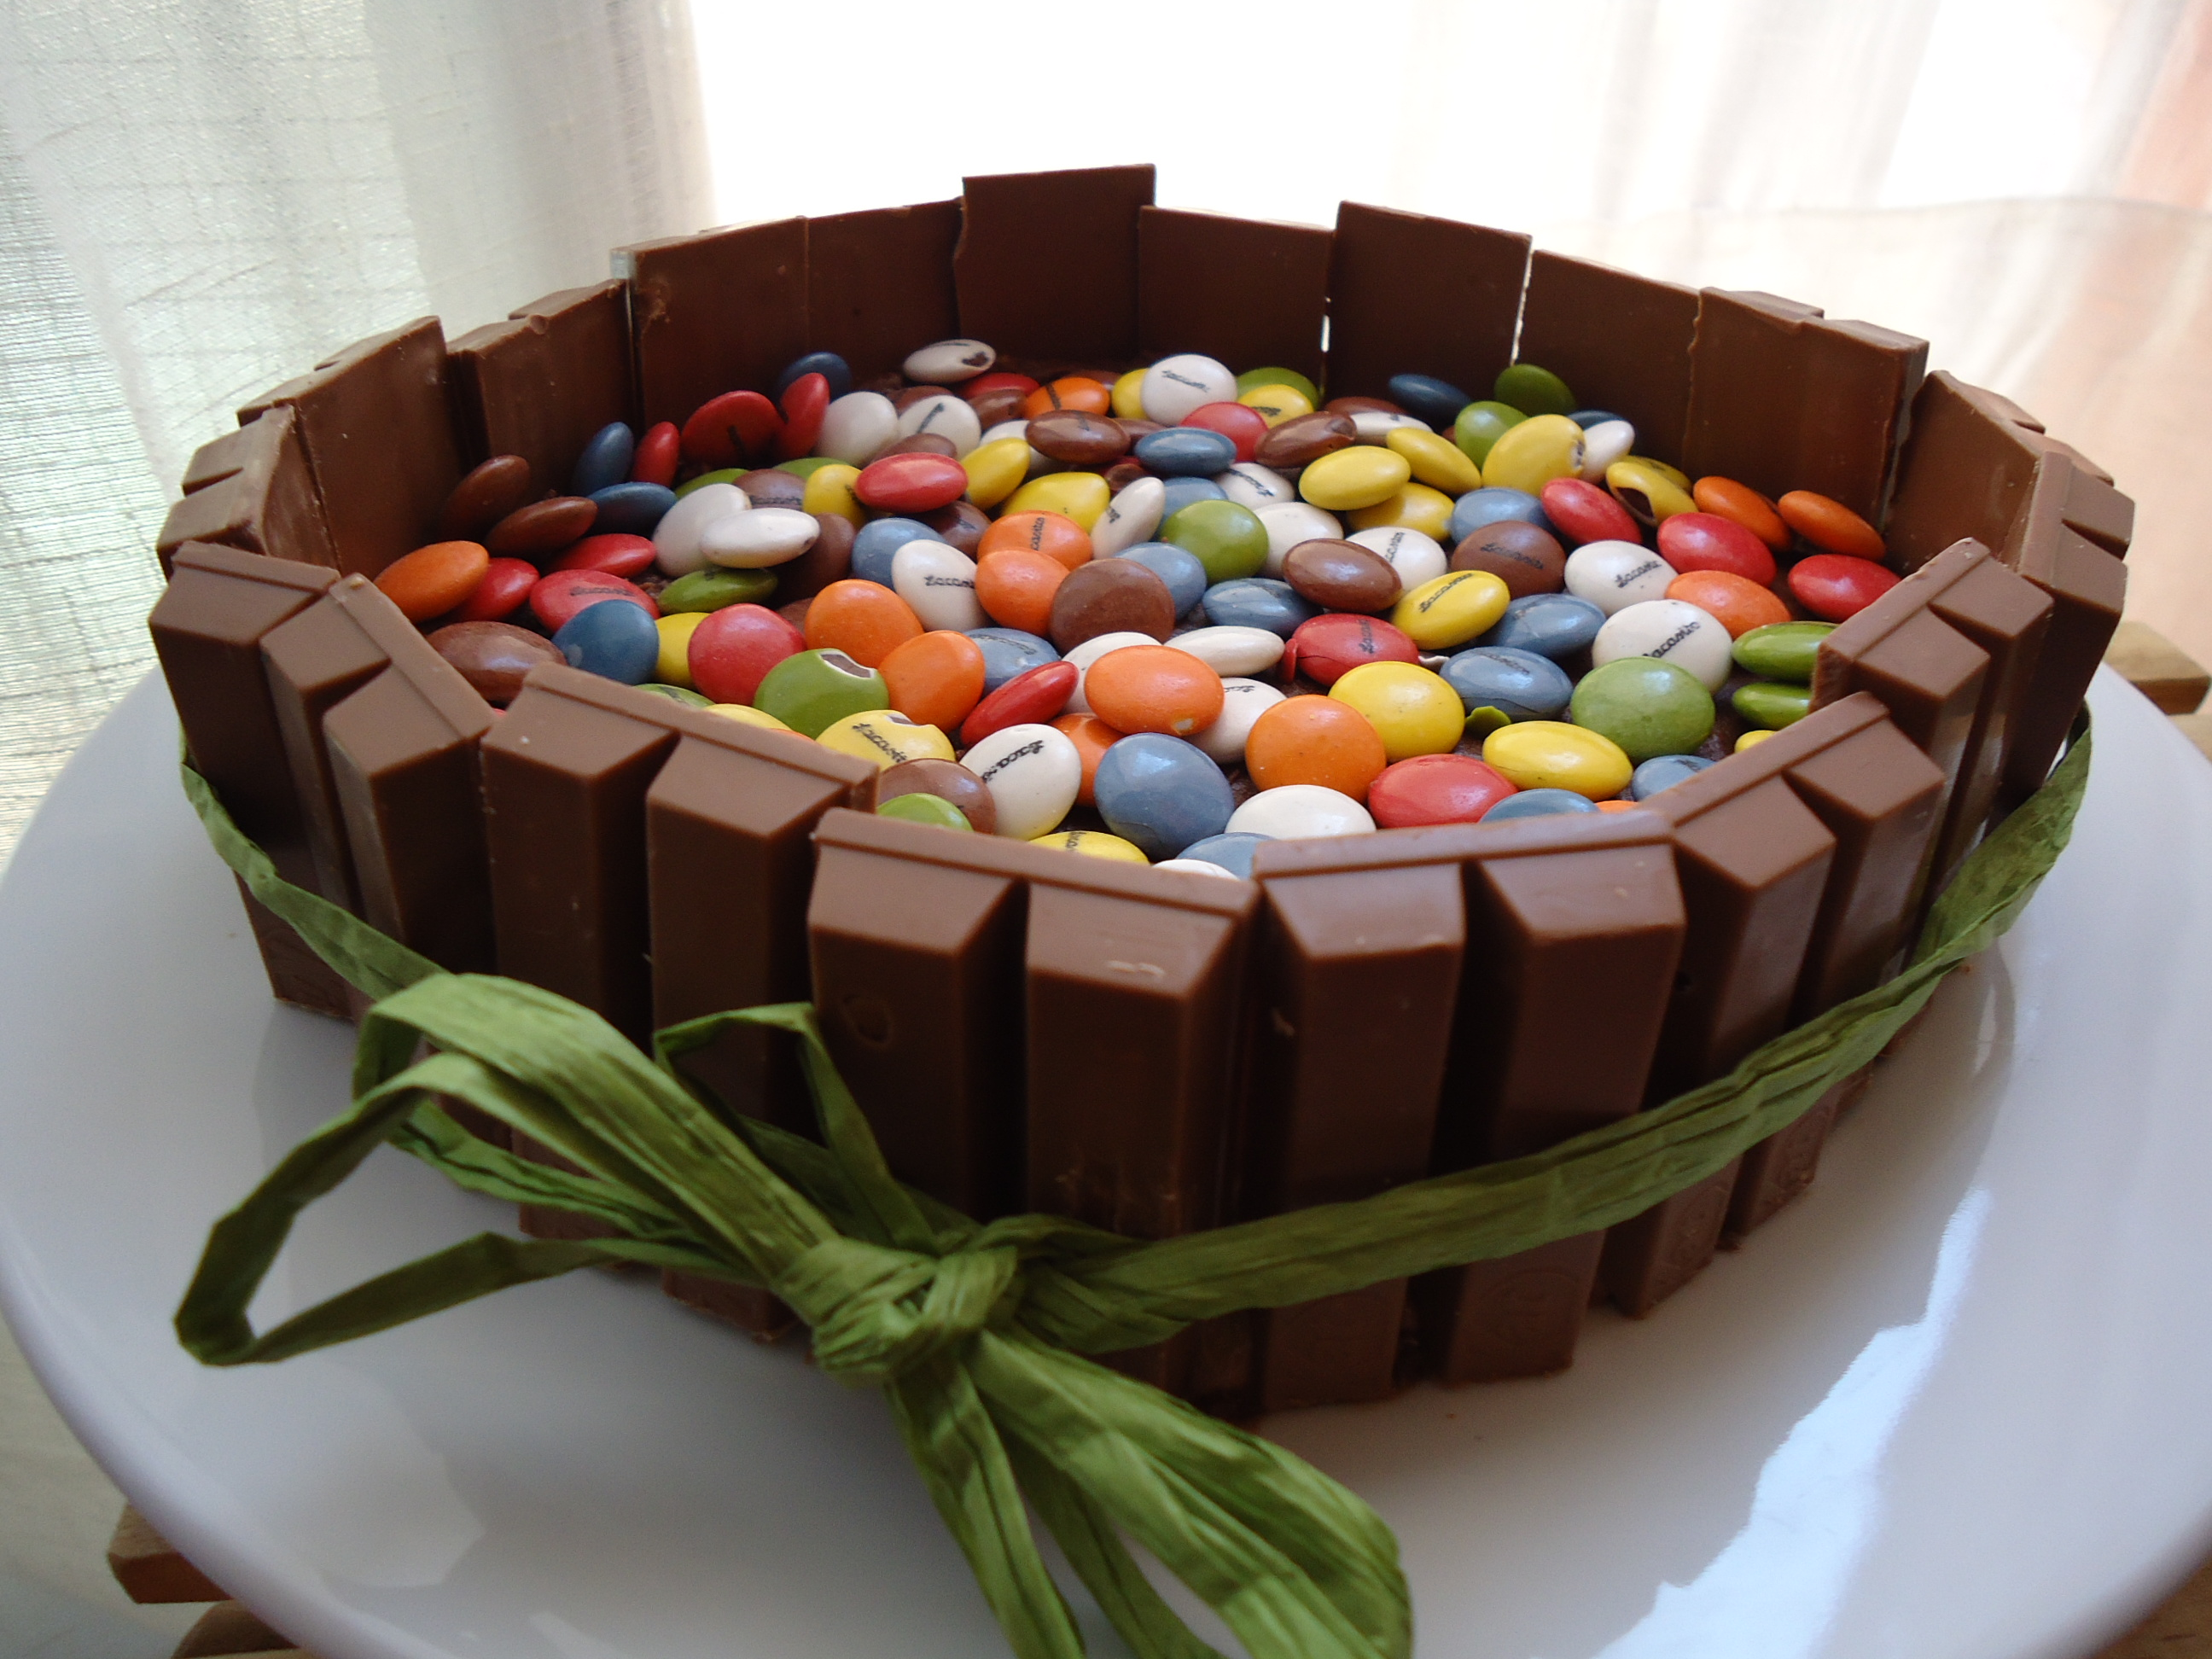 Como Decorar Un Pastel De Chocolate Pastel De Chocolate Decorado Con Kit Kats Galletomonster